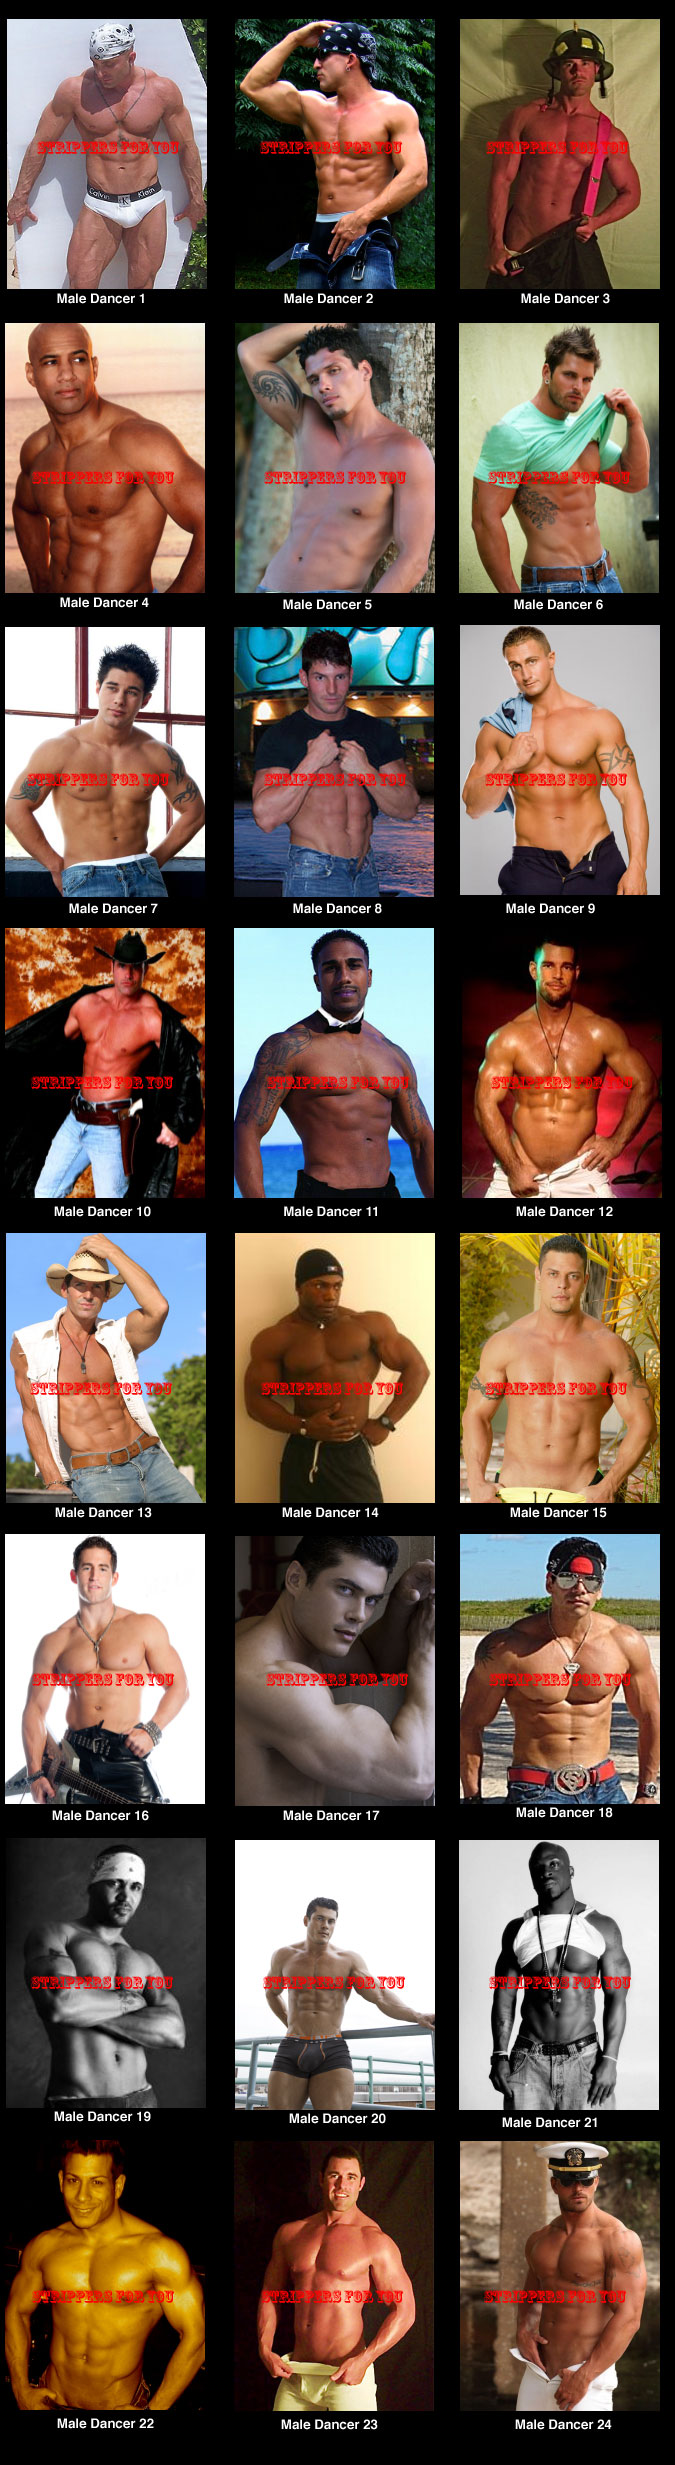 Bridgeport male strippers